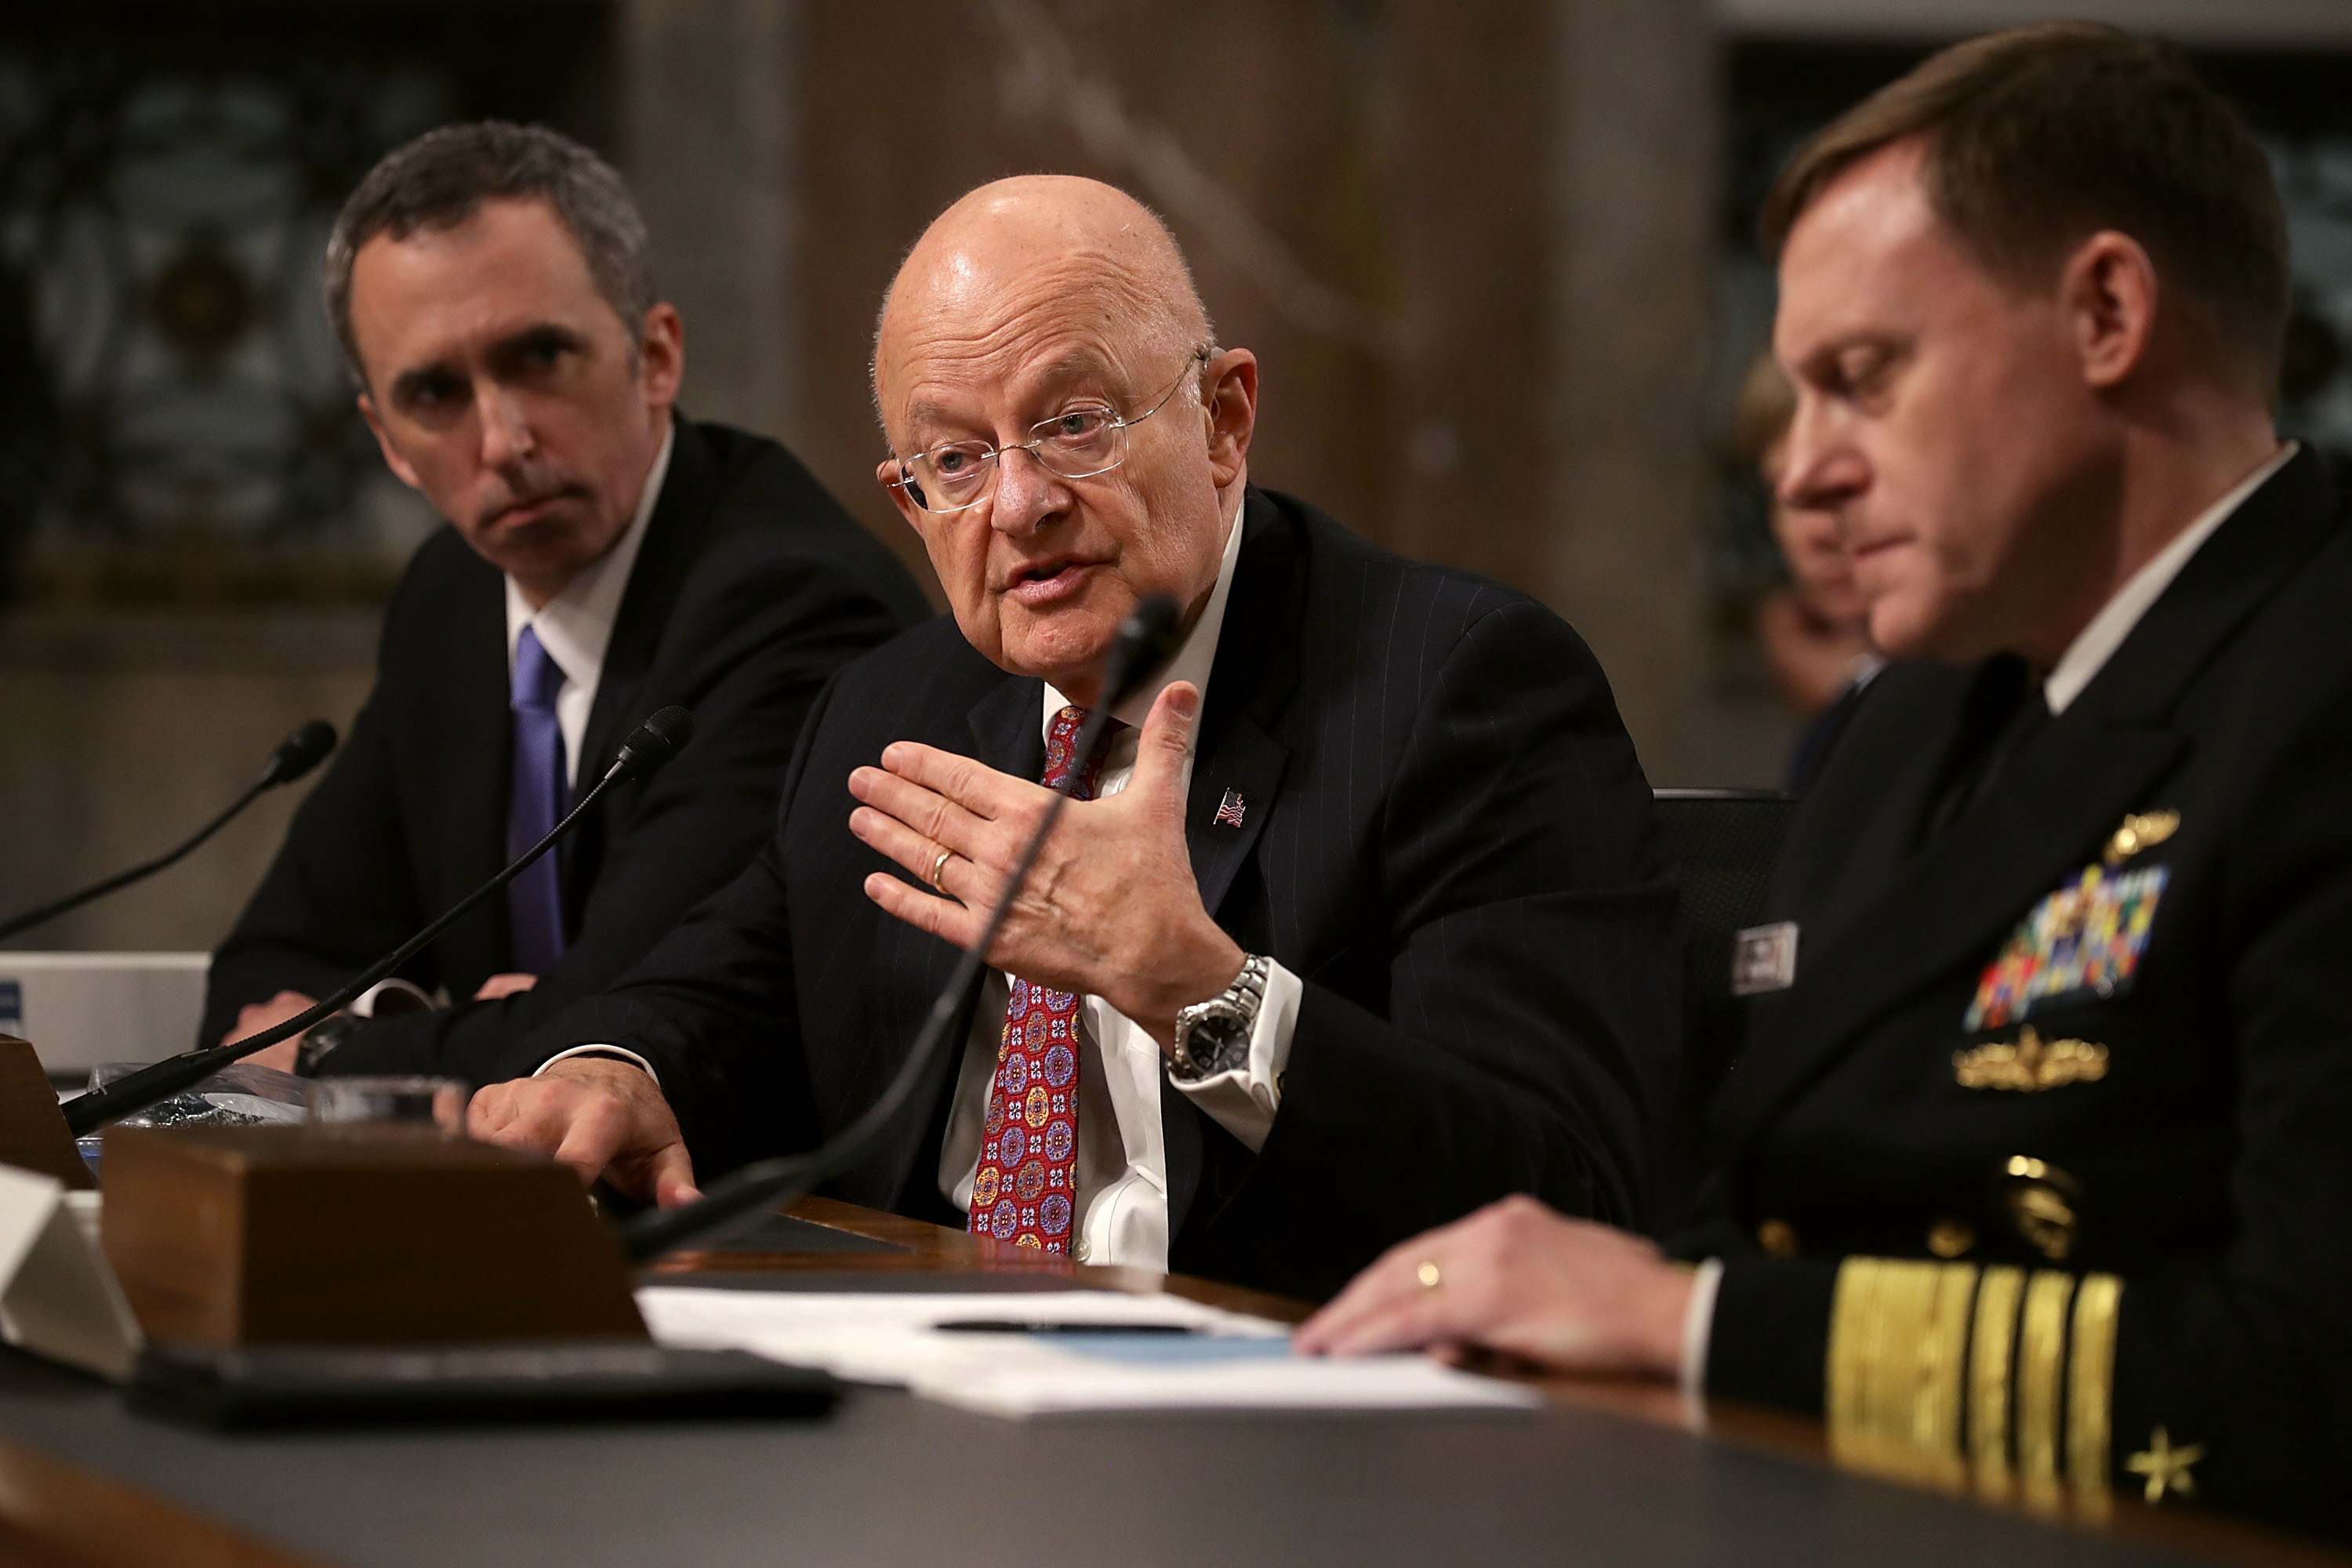 Defense Undersecretary for Intelligence Marcell Lettre II, Director of National Intelligence James Clapper and United States Cyber Command and National Security Agency Director Admiral Michael Rogers testify before the Senate Armed Services Committee on Thursday.